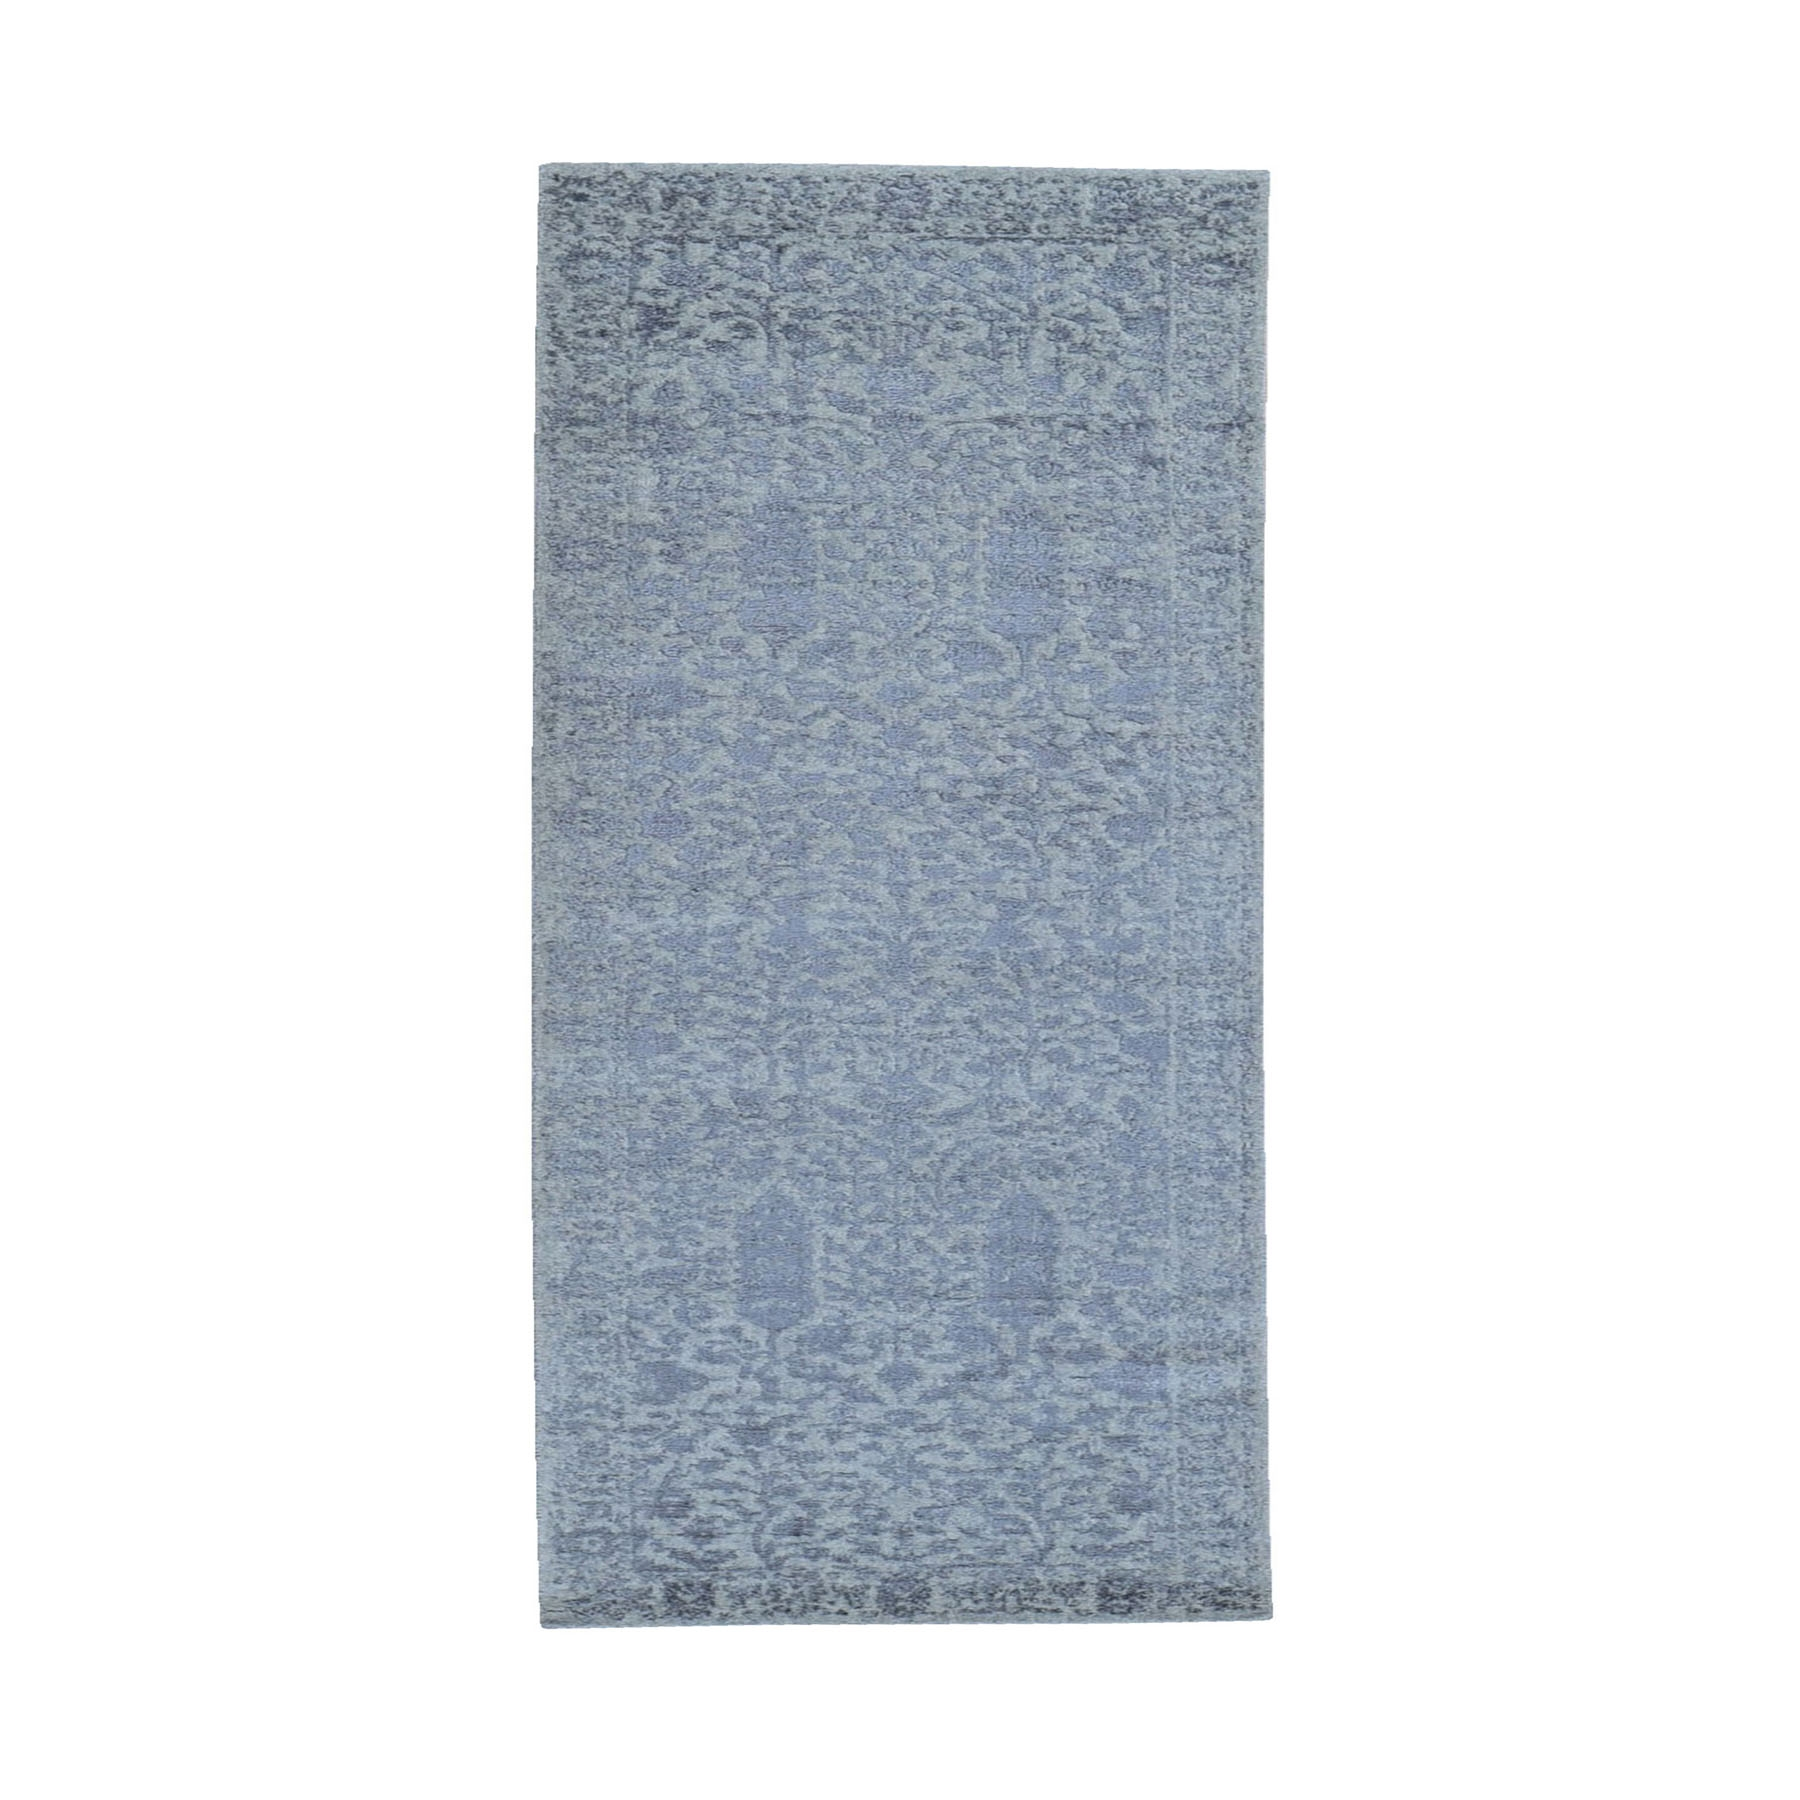 "2'5""x8' Gray Jacquard Hand Loomed Broken Cypress Tree Design Wool and Silk Thick and Plush Runner Oriental Rug"